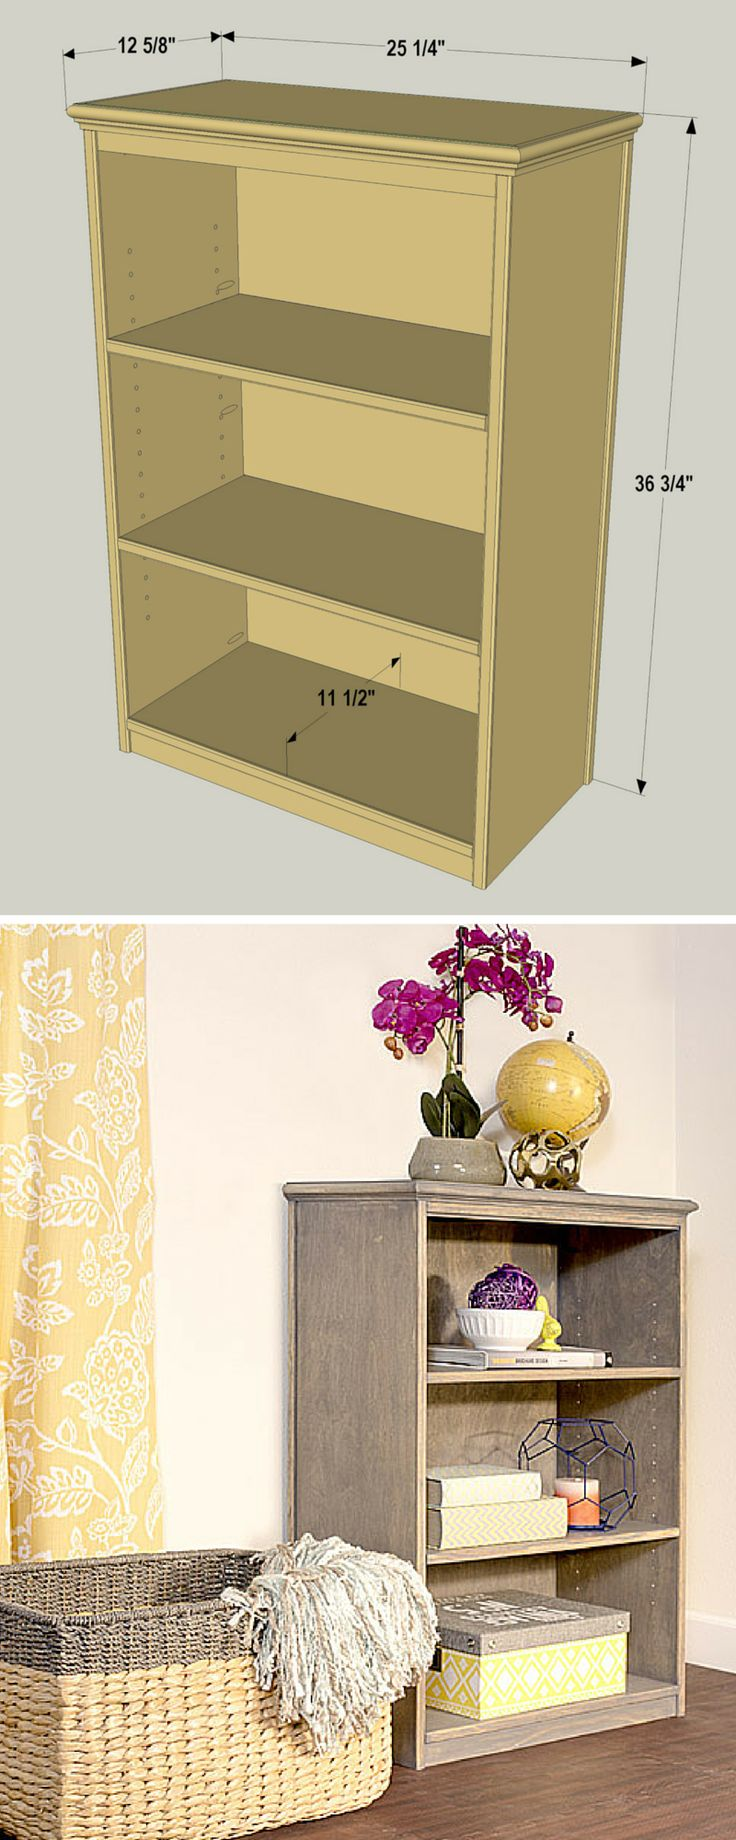 This compact bookcase offers a perfect solution whether you're looking for a place to keep your favorite books or you're seeking a place to display objects you love. Its compact size means you can fit it into almost any room, and the simple style means it will match a variety of decorating styles. FREE PLANS at buildsomething.com